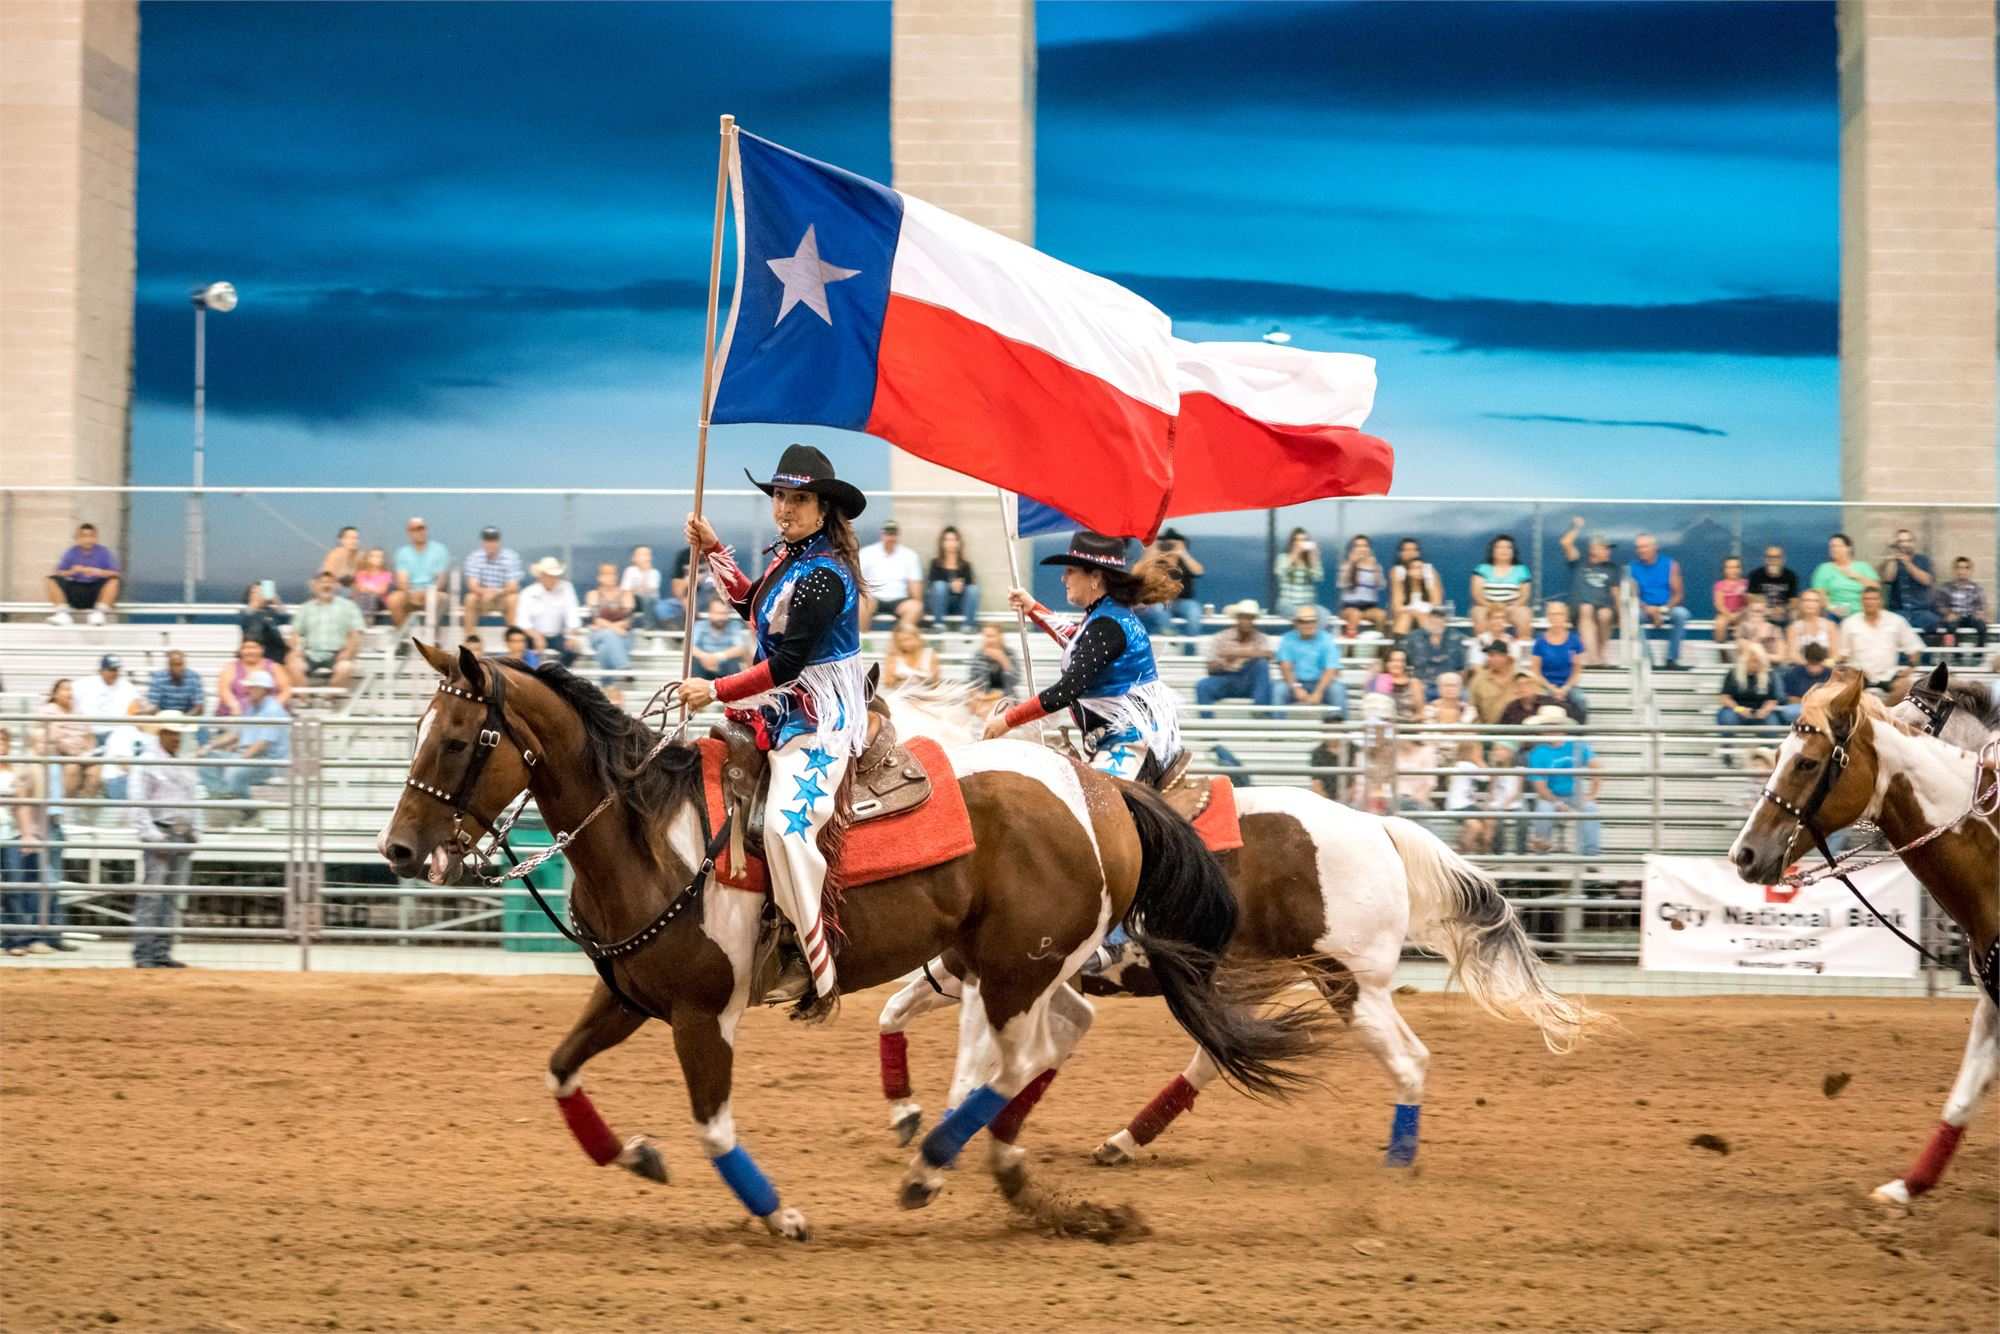 Cowgirls riding through the arena with Texas Flag during the Taylor Rodeo at night